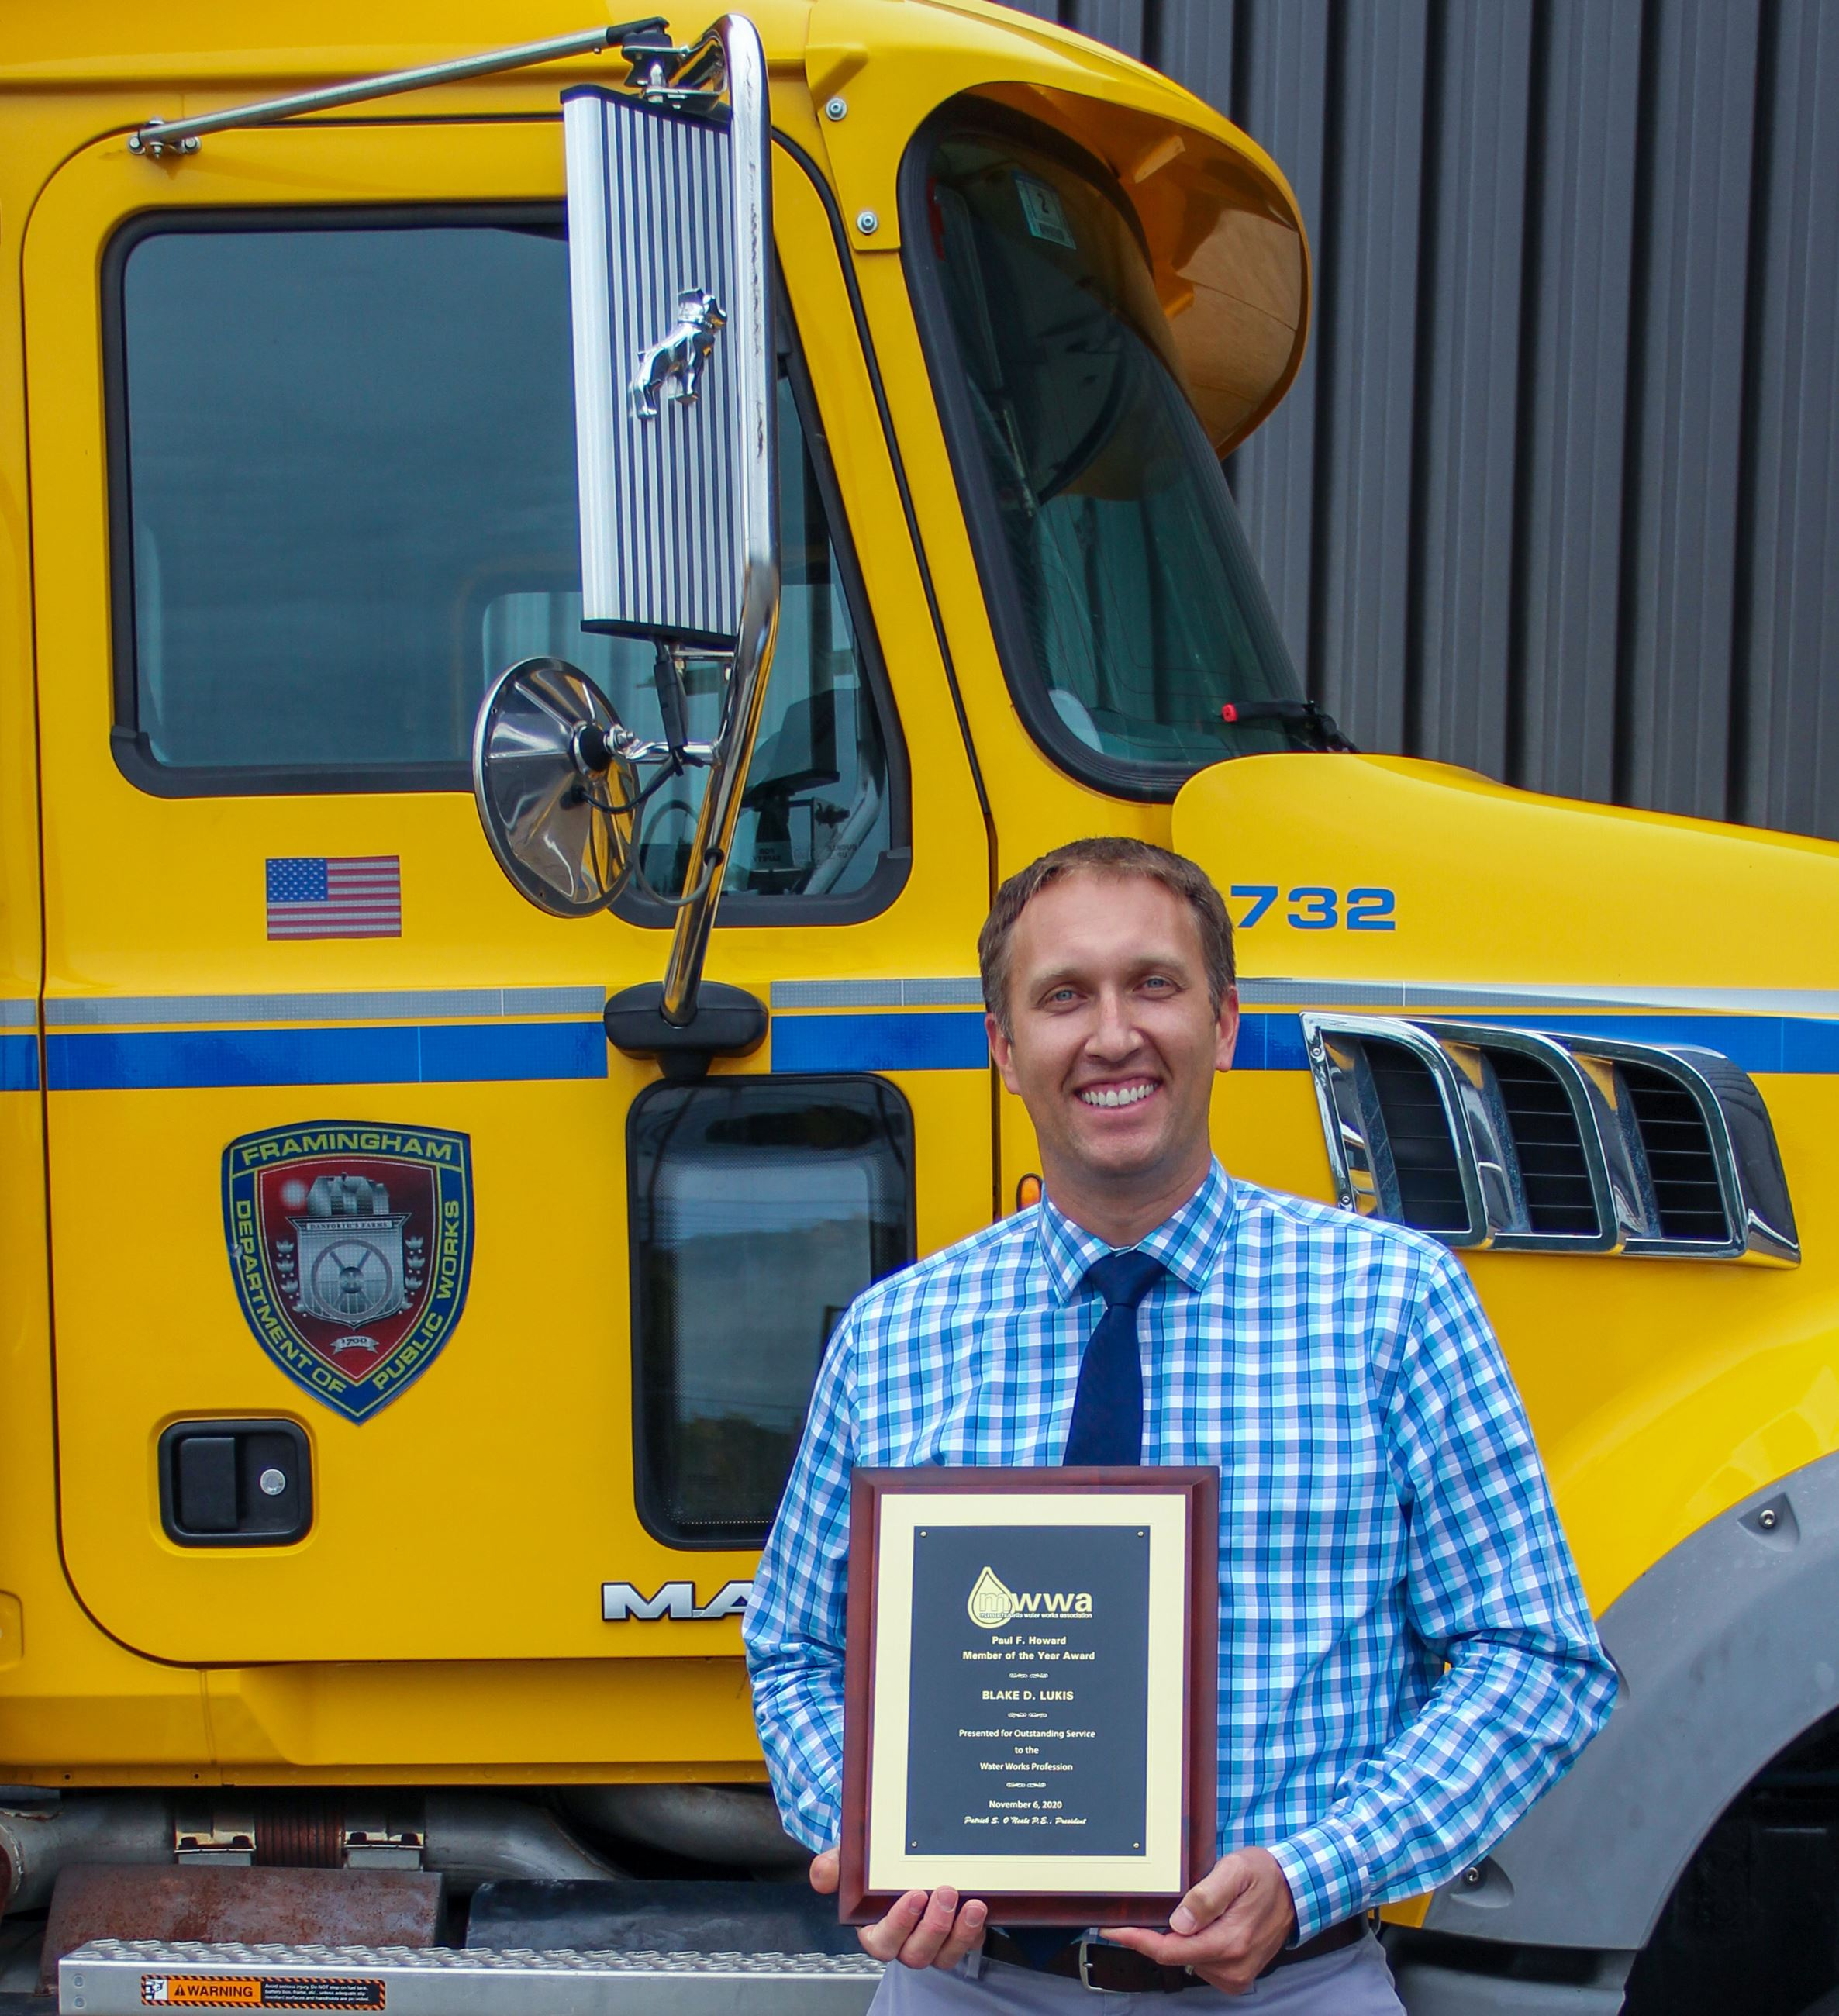 Photo of Blake Lukis holding a plaque from MWWA near a yellow Framingham DPW Truck